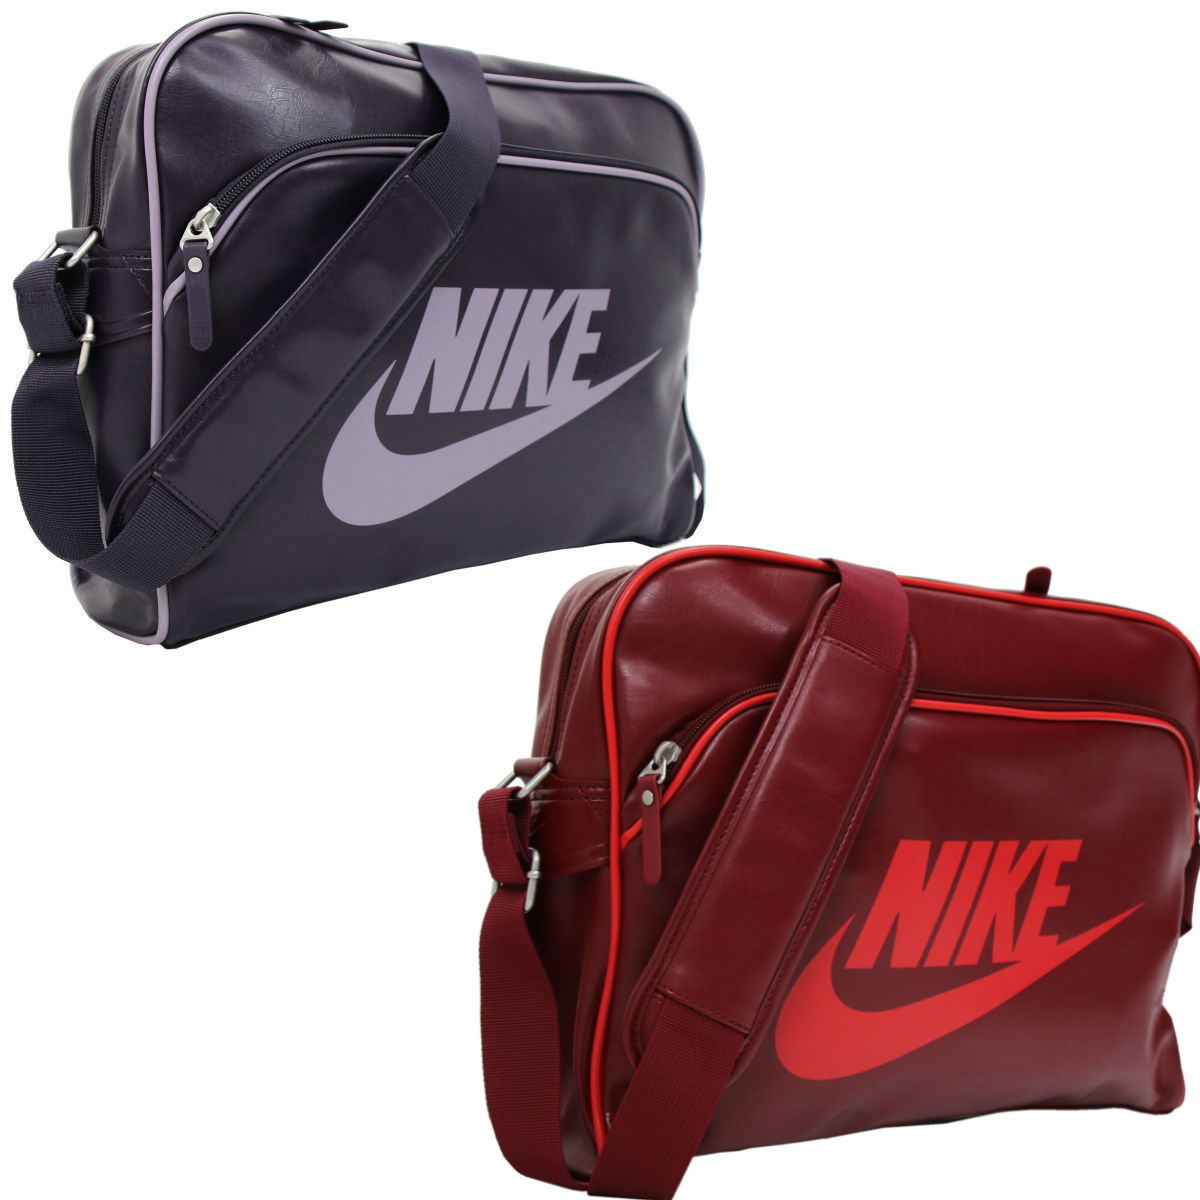 nike heritage si tasche umh ngetasche schultertasche damen herren diverse farben ebay. Black Bedroom Furniture Sets. Home Design Ideas